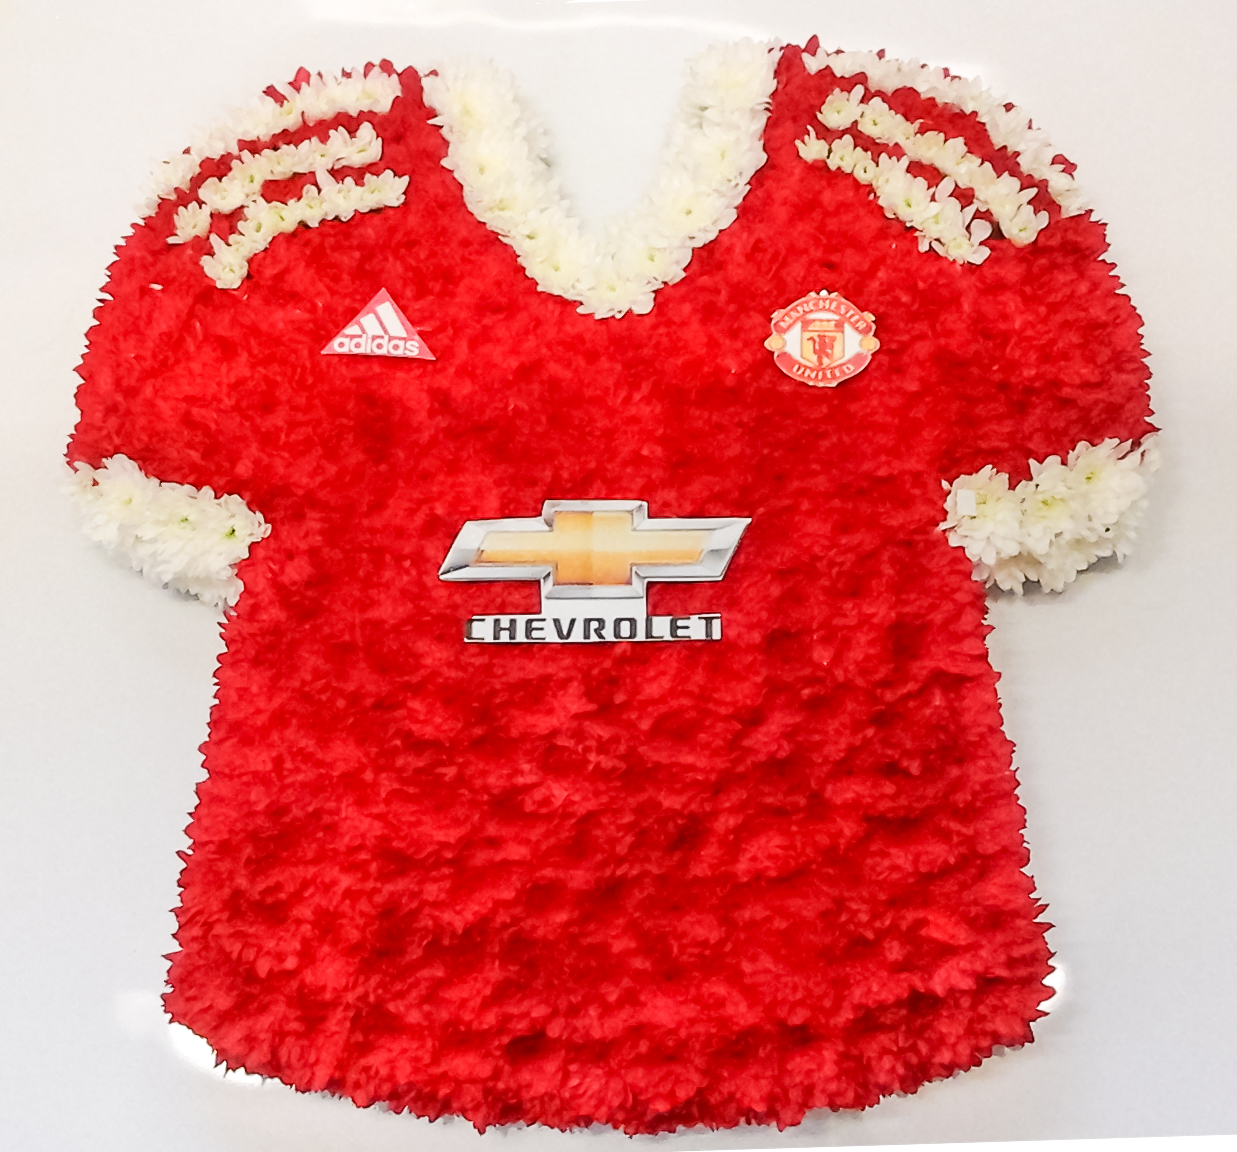 Funeral special tribute flowers football badge radcliffe bury man united shirt 2015 izmirmasajfo Images